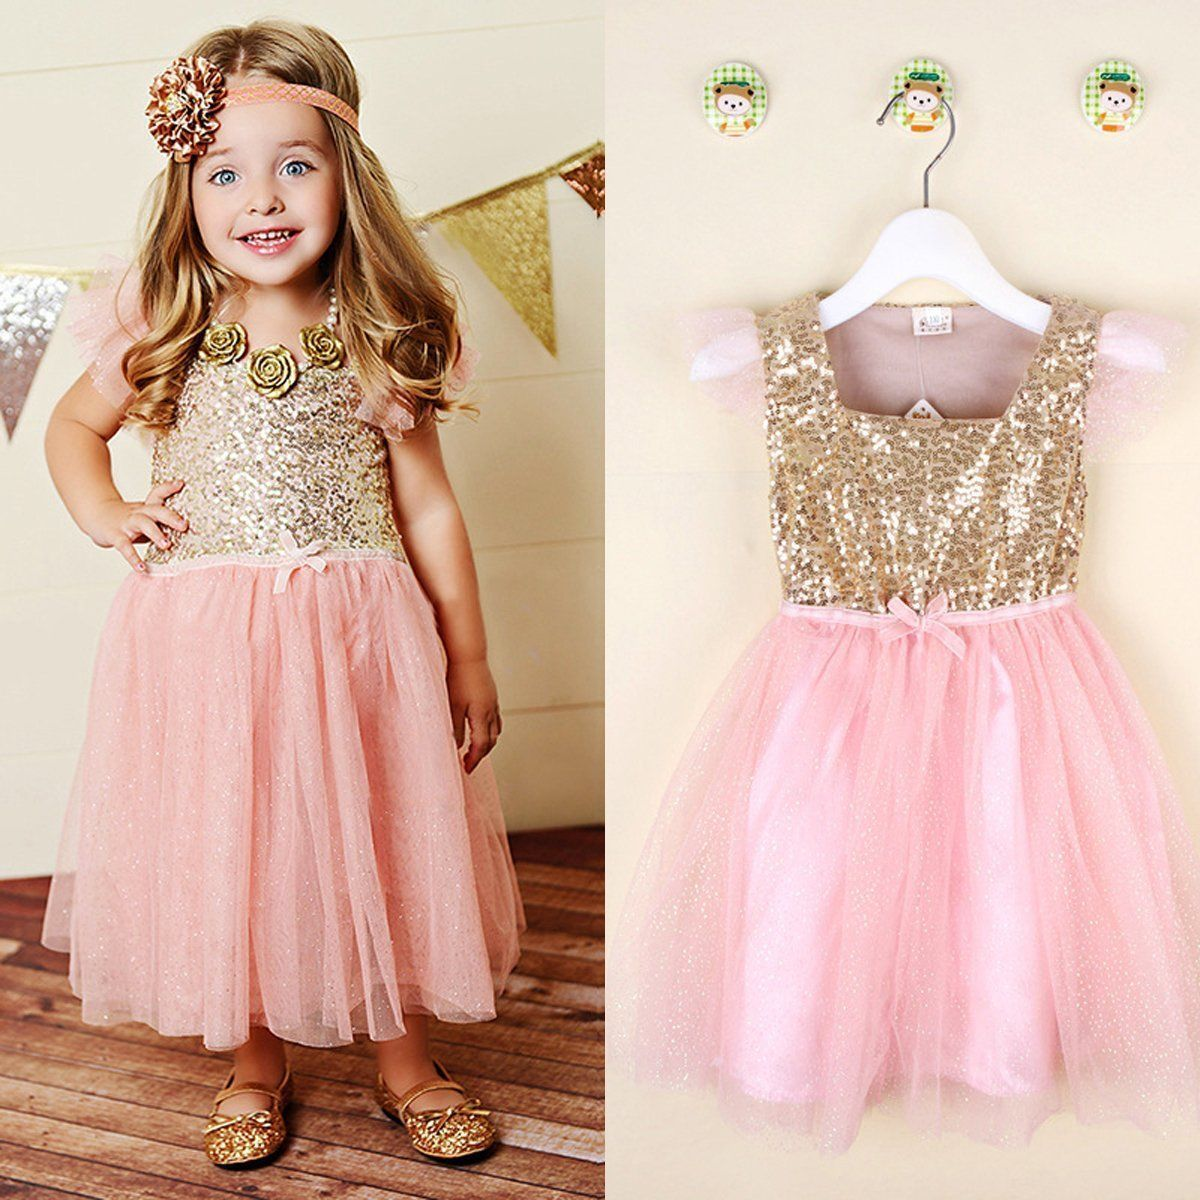 Flower Girls Kids Toddler Baby Princess Party Sequins Wedding Tulle ...